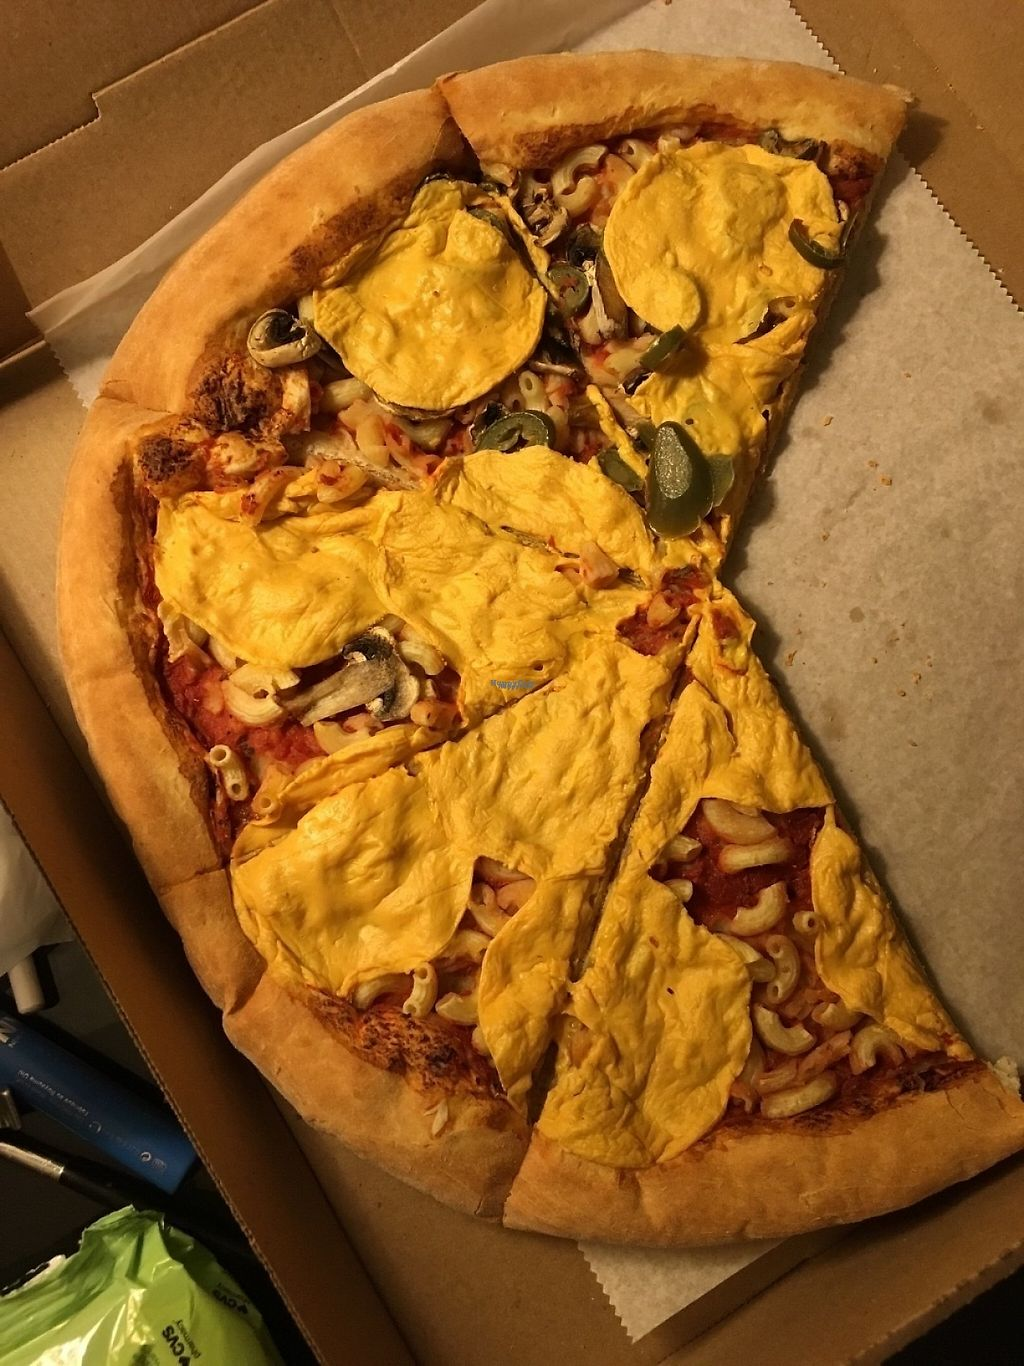 """Photo of REMOVED: Ta-Ta's Pizza  by <a href=""""/members/profile/theveganmonster"""">theveganmonster</a> <br/>Cheese as well as macaroni rather than macaroni and cheese <br/> April 17, 2017  - <a href='/contact/abuse/image/37806/249197'>Report</a>"""